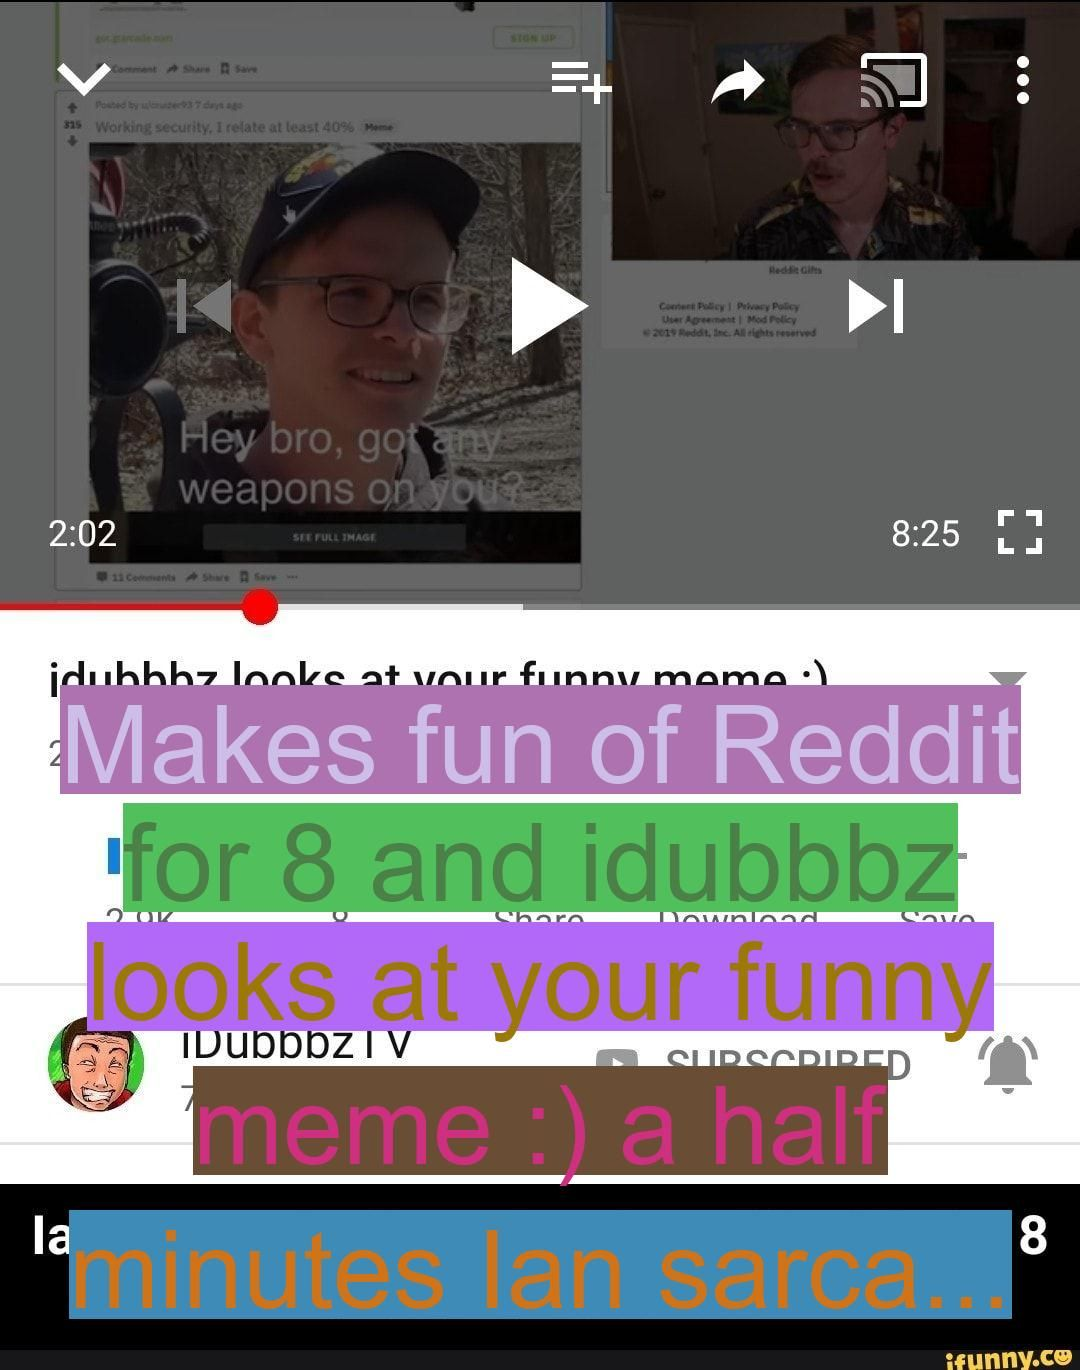 Makes Fun Of Reddit For 8 And Idubbbz Looks At Your Funny Meme A Half Minutes Ian Sarcastically Ian Sarcastically Makes Fun In 2020 You Funny Funny Memes Hey Bro